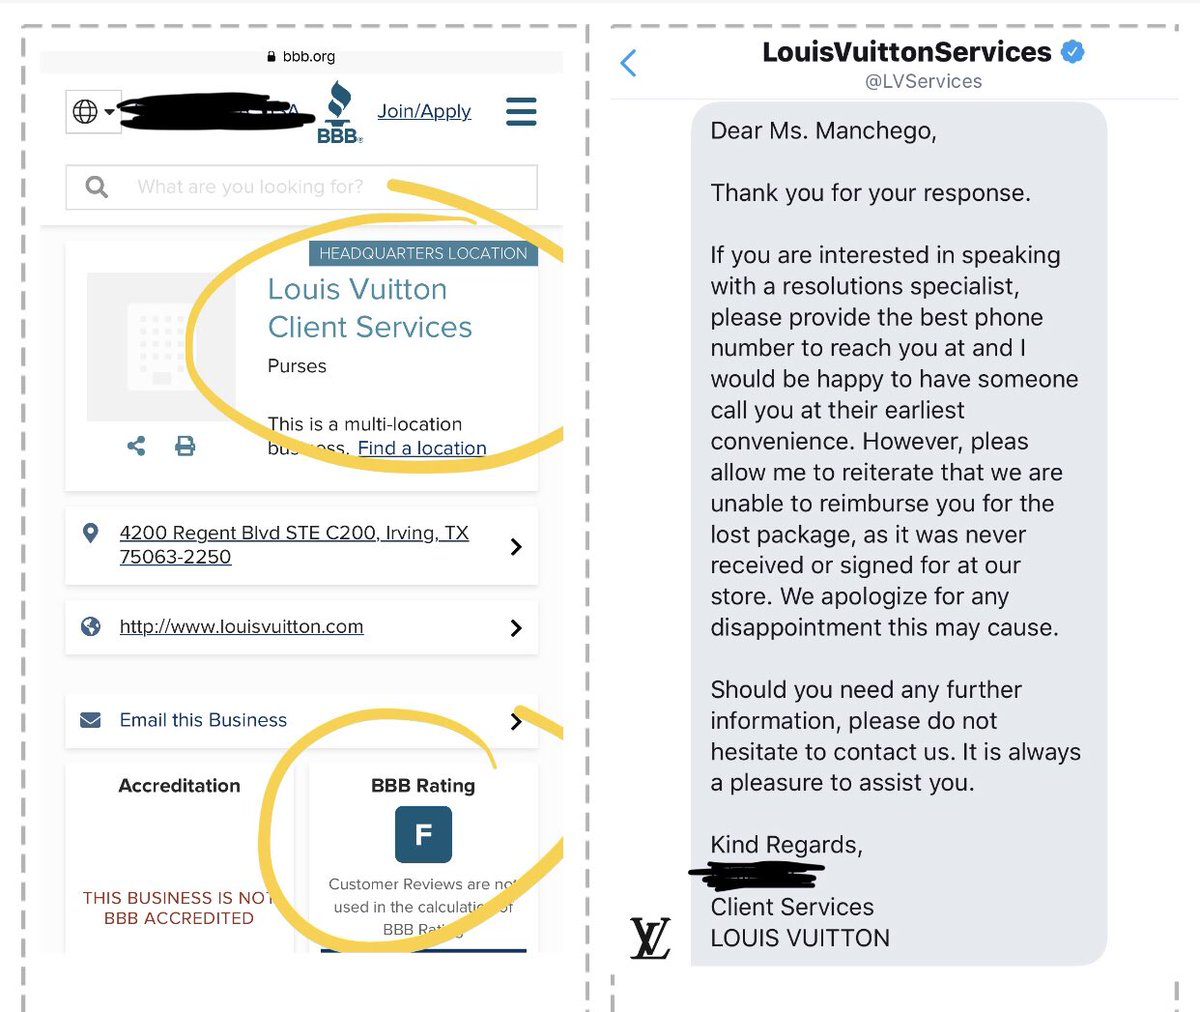 Should've checked @bbb_us first before buying @LouisVuitton_US they sell defective items and tell you to ship to invalid address but don't replace your lost item.@LVServices #WednesdayWisdom #advocacy #isthislegal #judge #wednesdaymorning #MorningJoe #stubborn #WednesdayThoughts